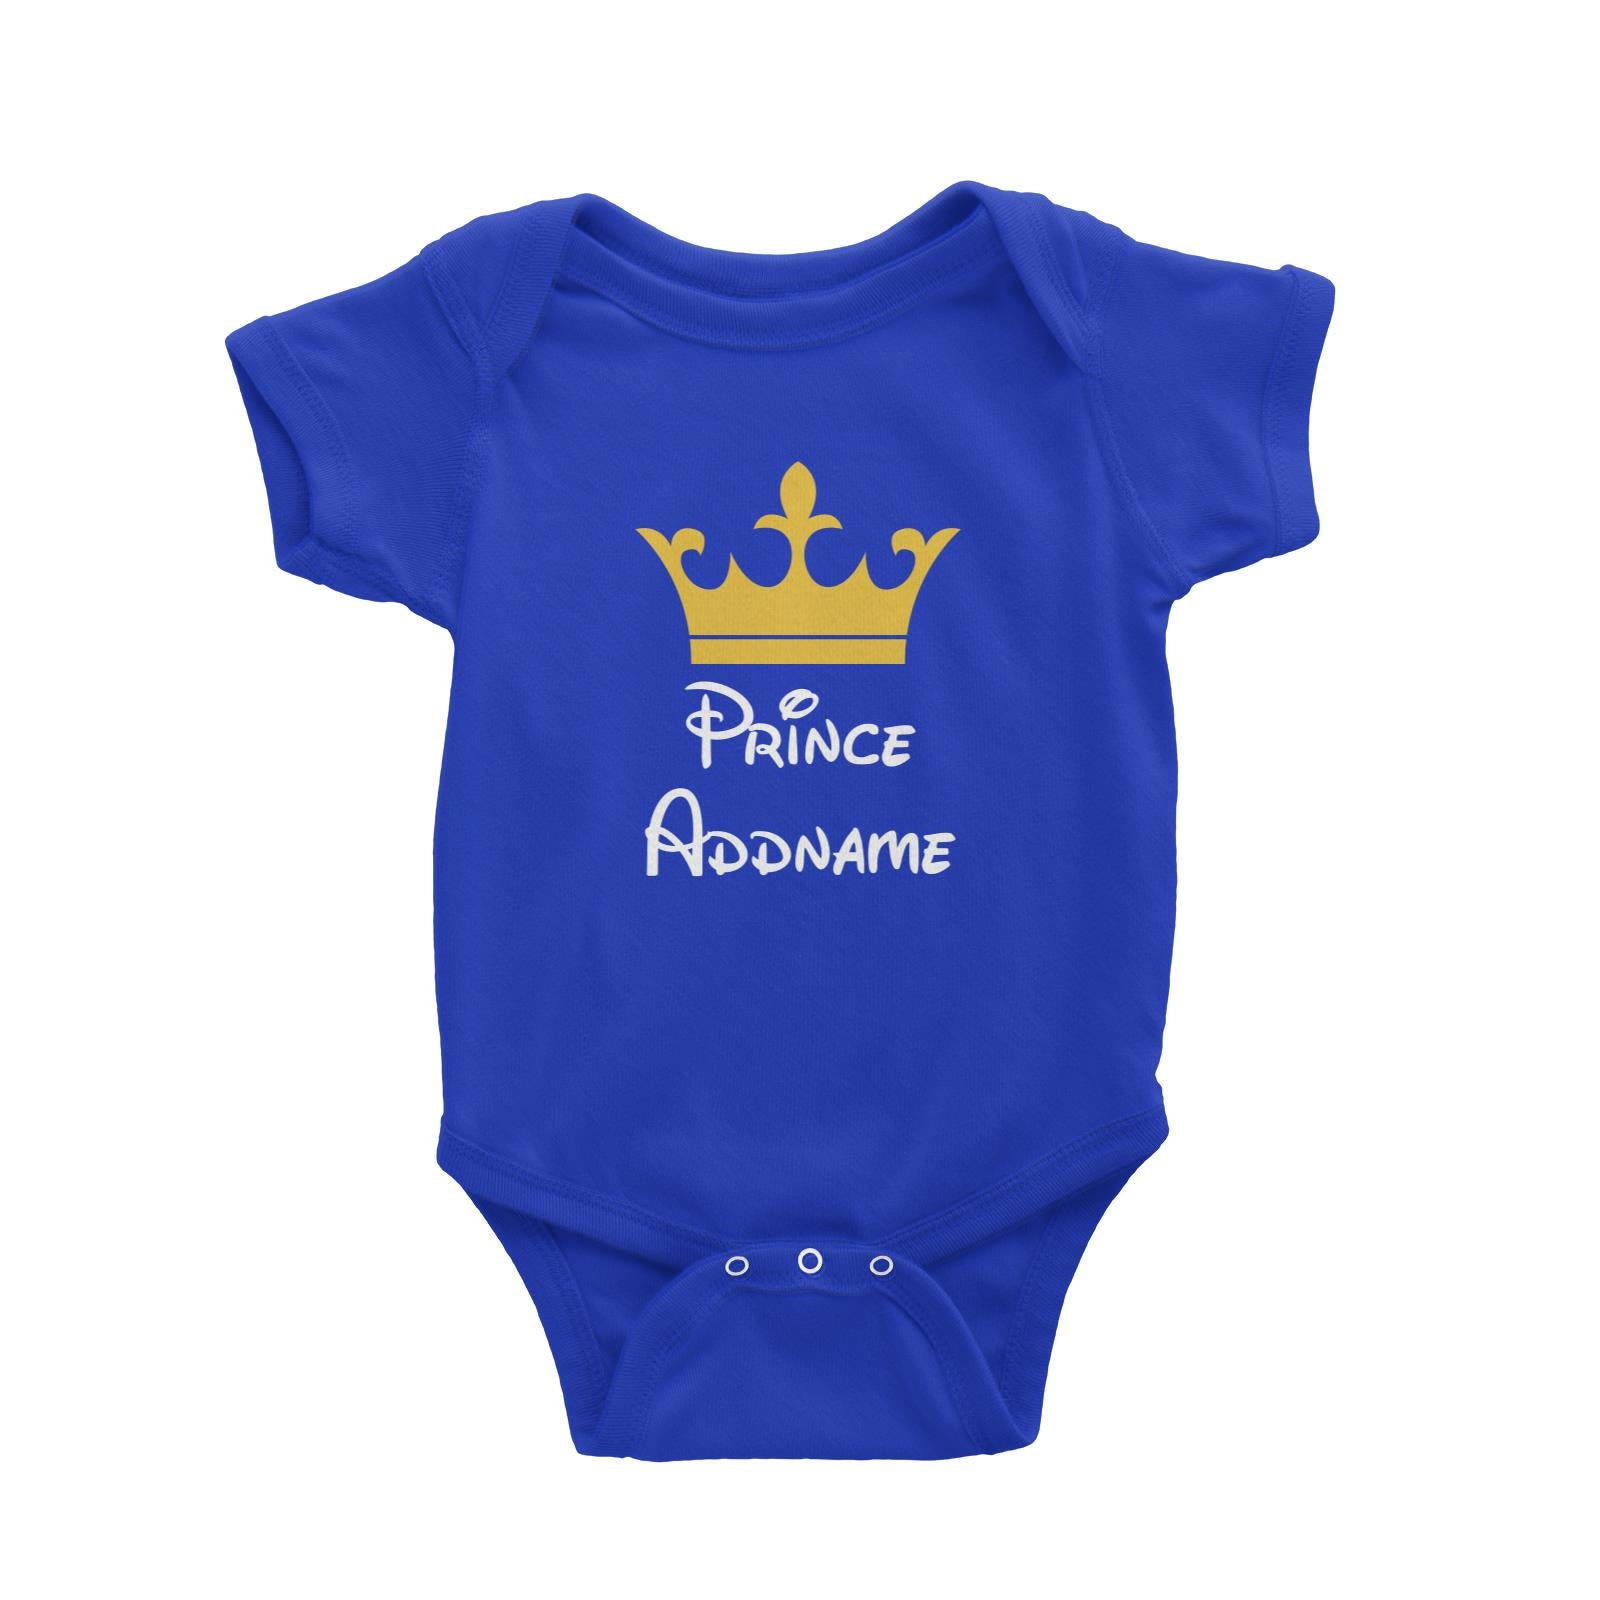 Royal Prince with Crown Addname Baby Romper